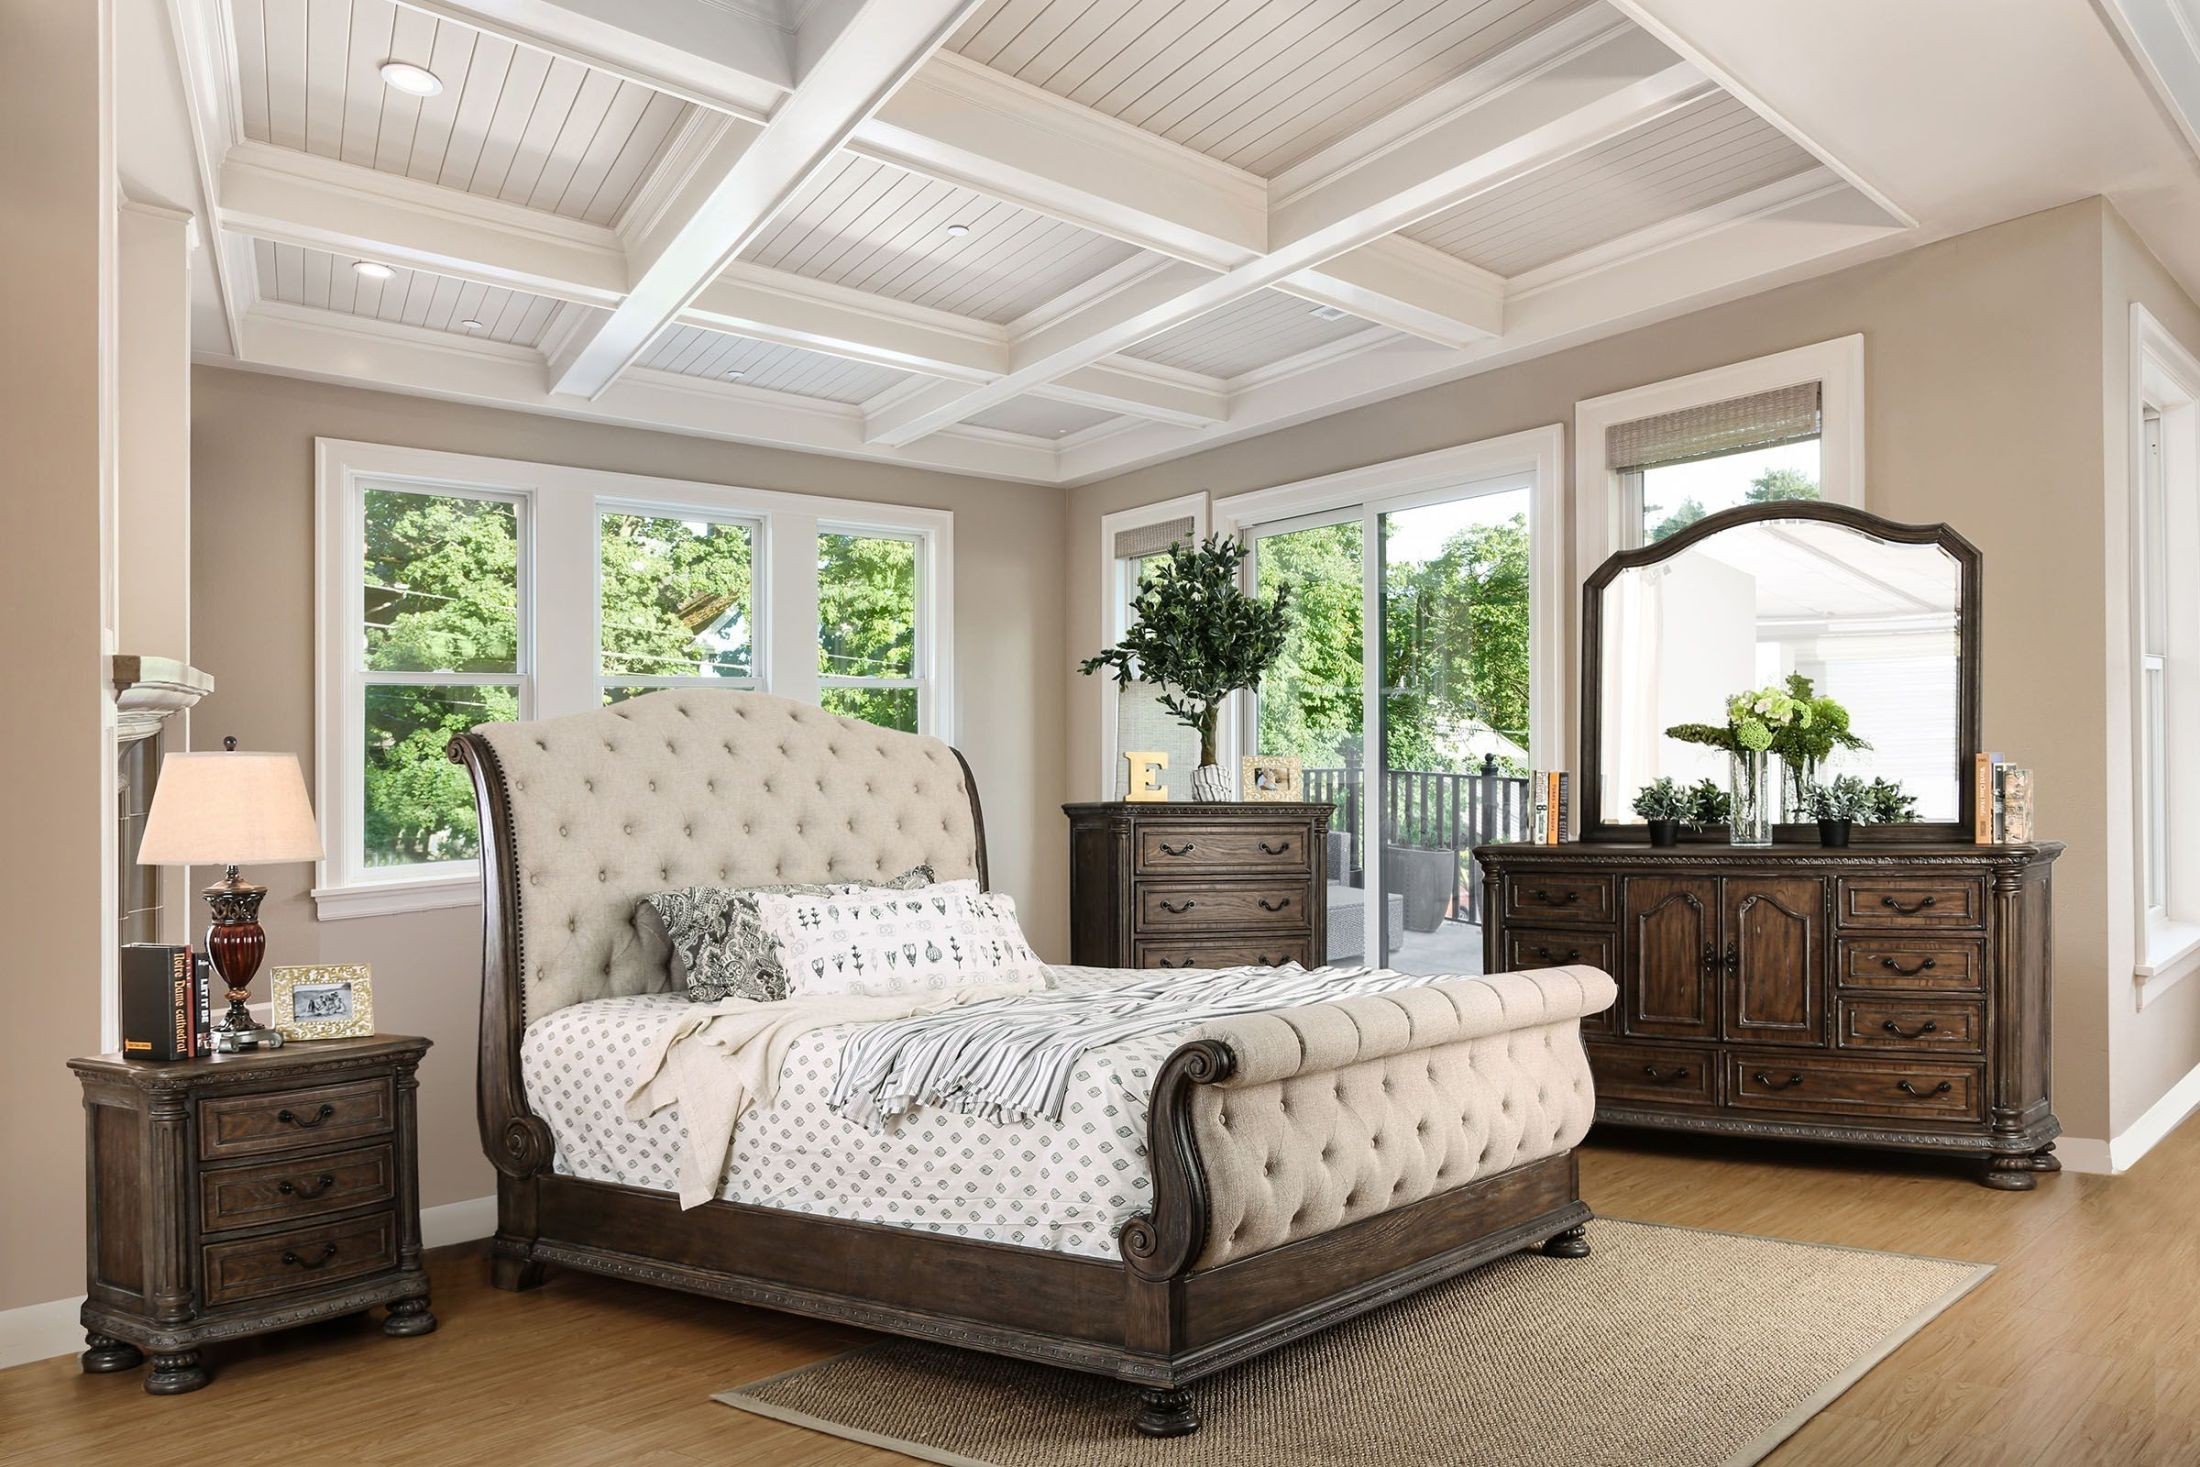 Lysandra rustic natural tone sleigh bedroom set from